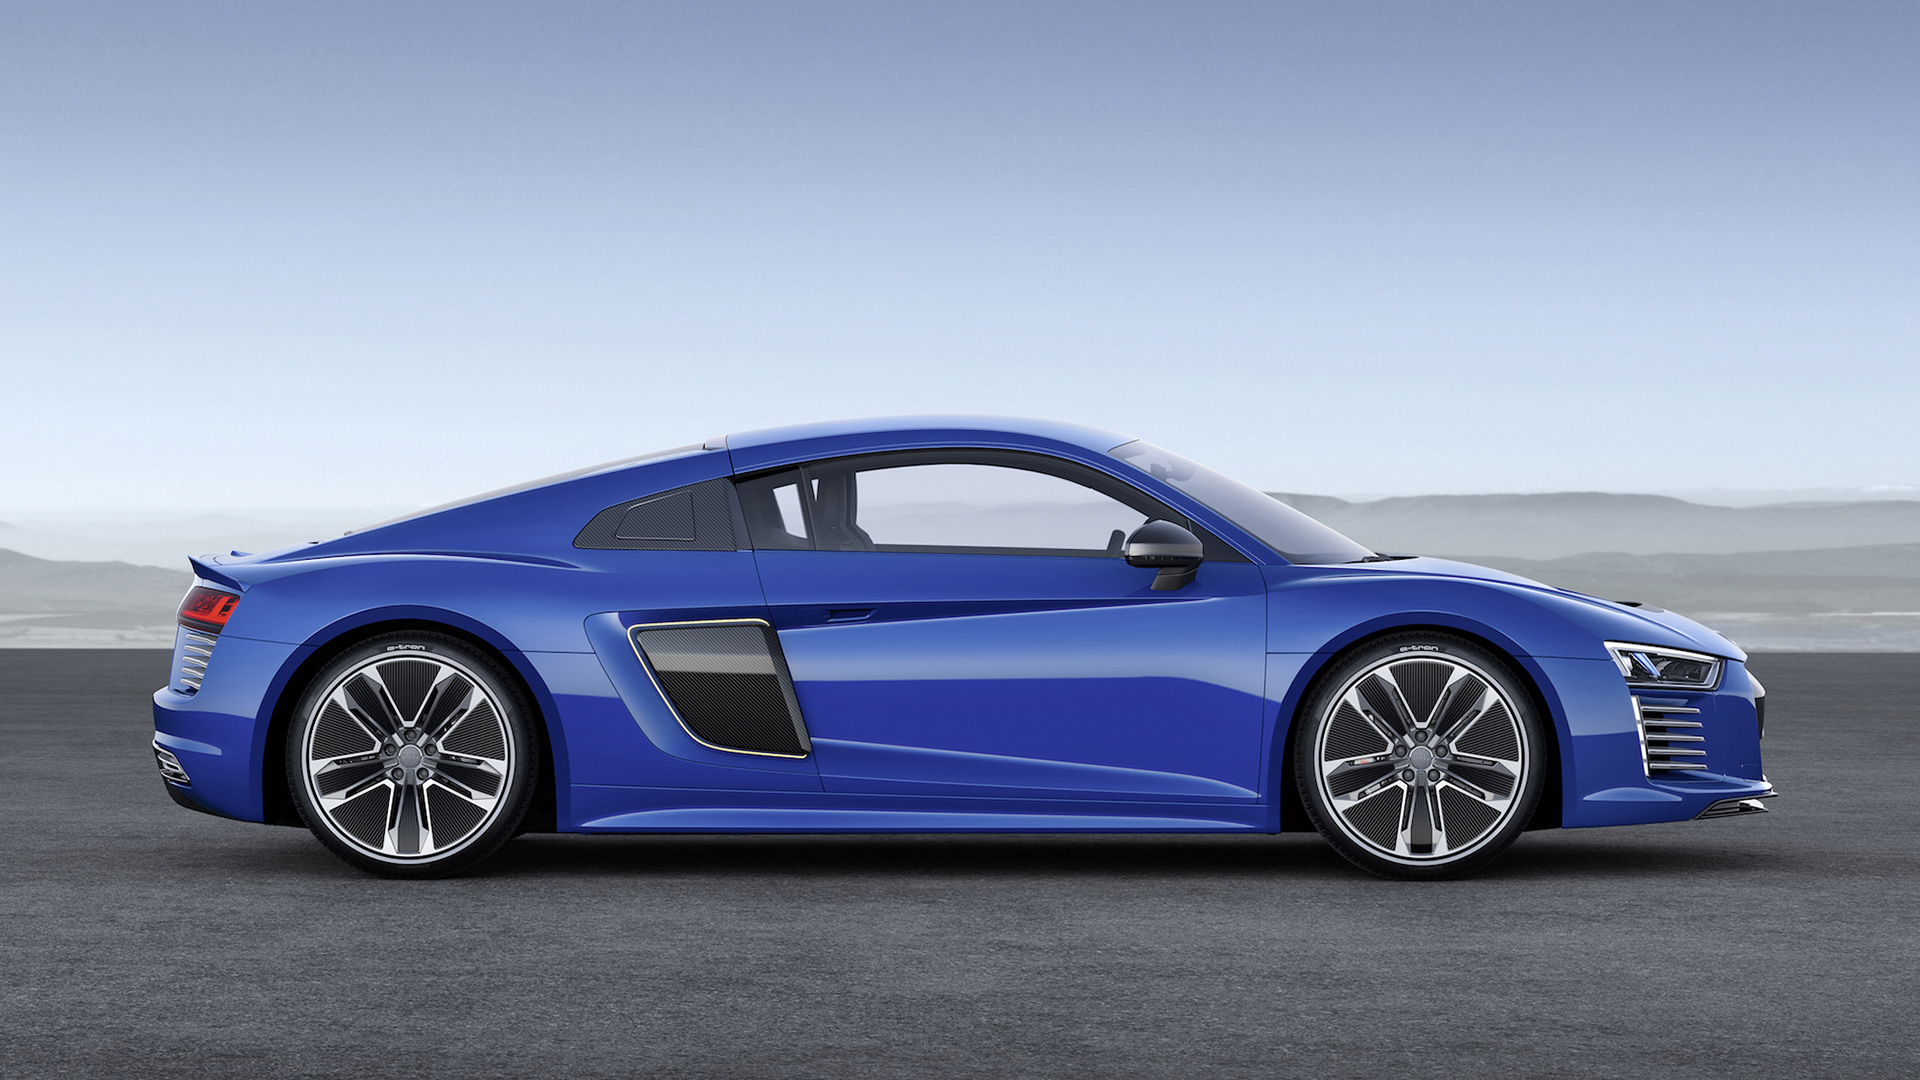 2016 audi r8 side view wallpaper 48736